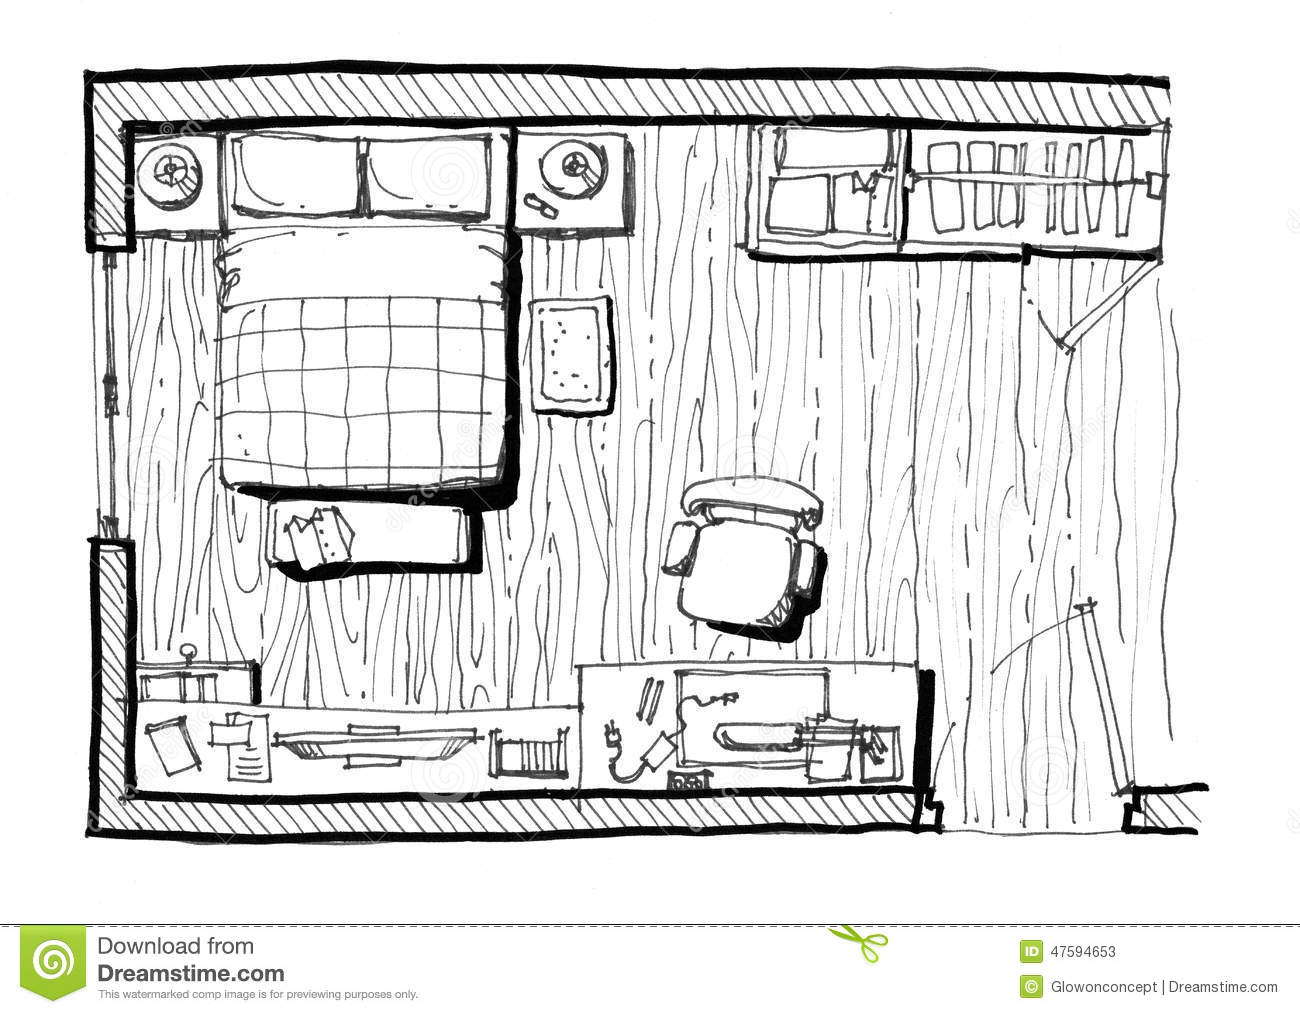 Bedroom layout illustration stock illustration image for Bedroom designs sketch